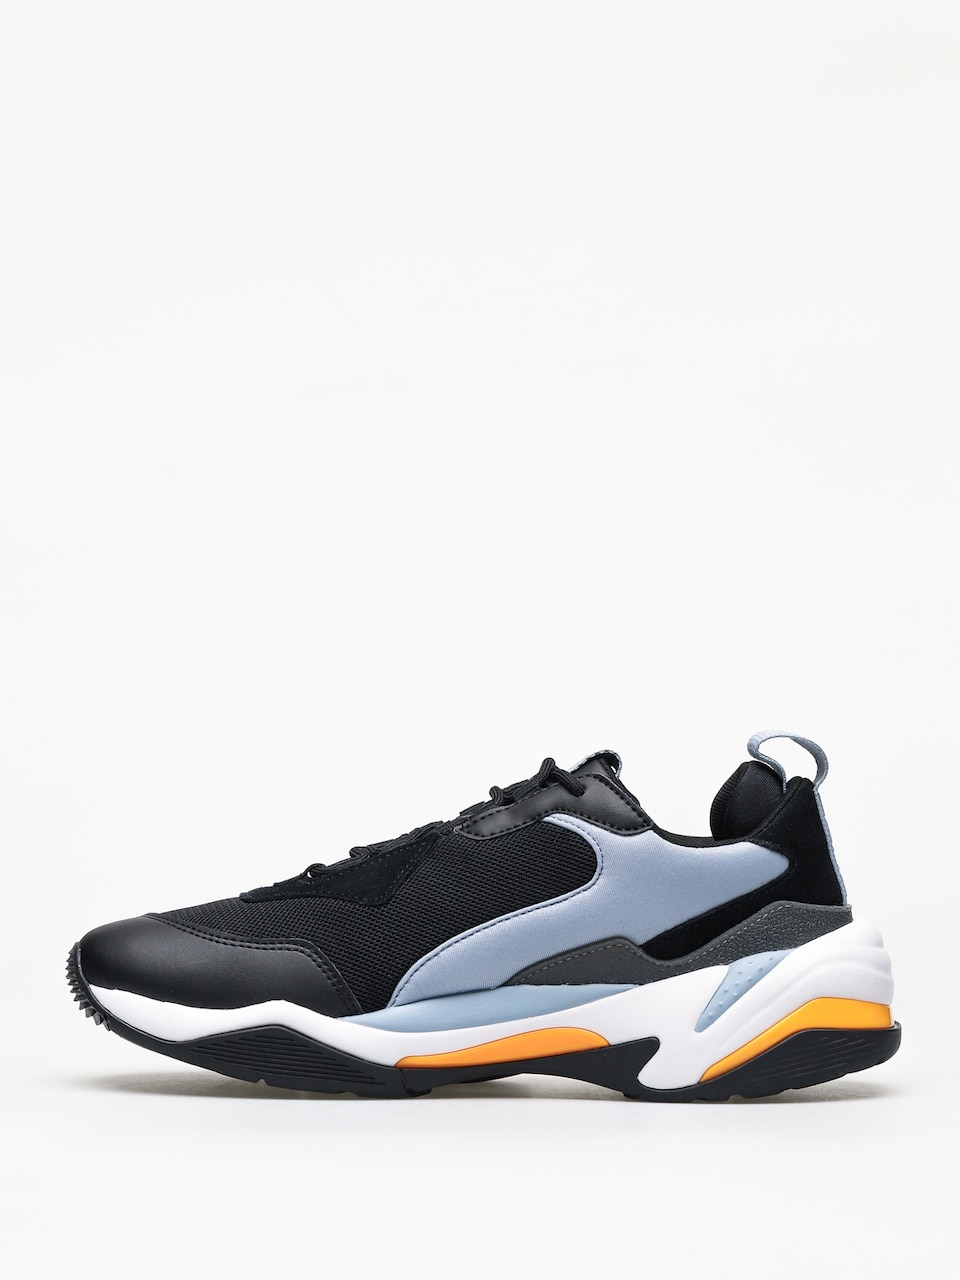 Buty Puma Thunder Fashion 2.0 (puma blackfaded denimpuma